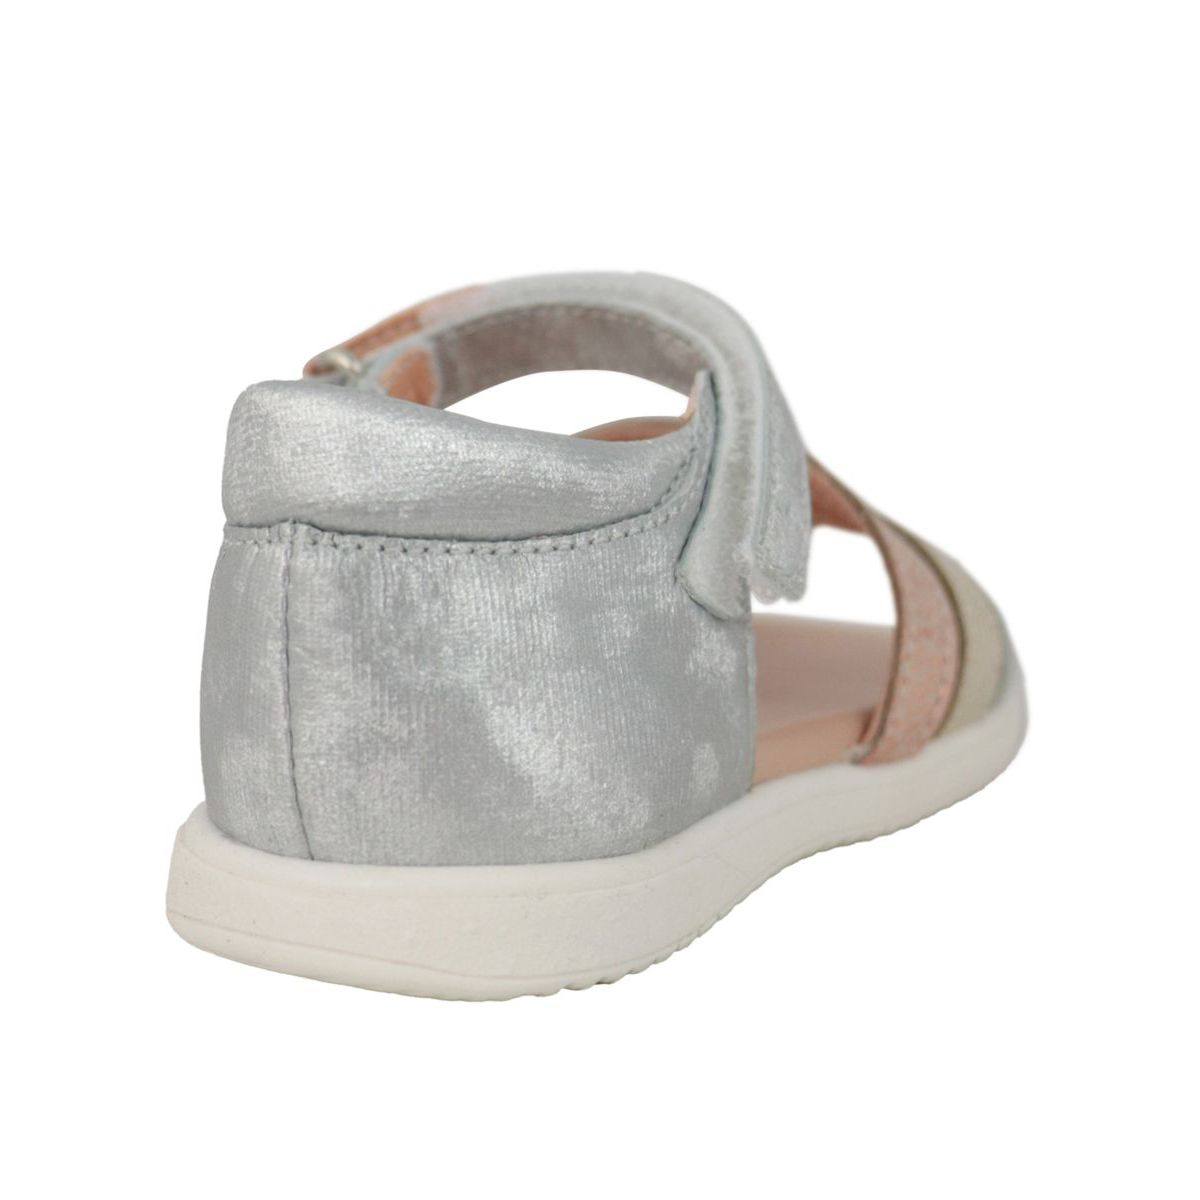 Sandal in lurex leather with buckle Platinum Clarys